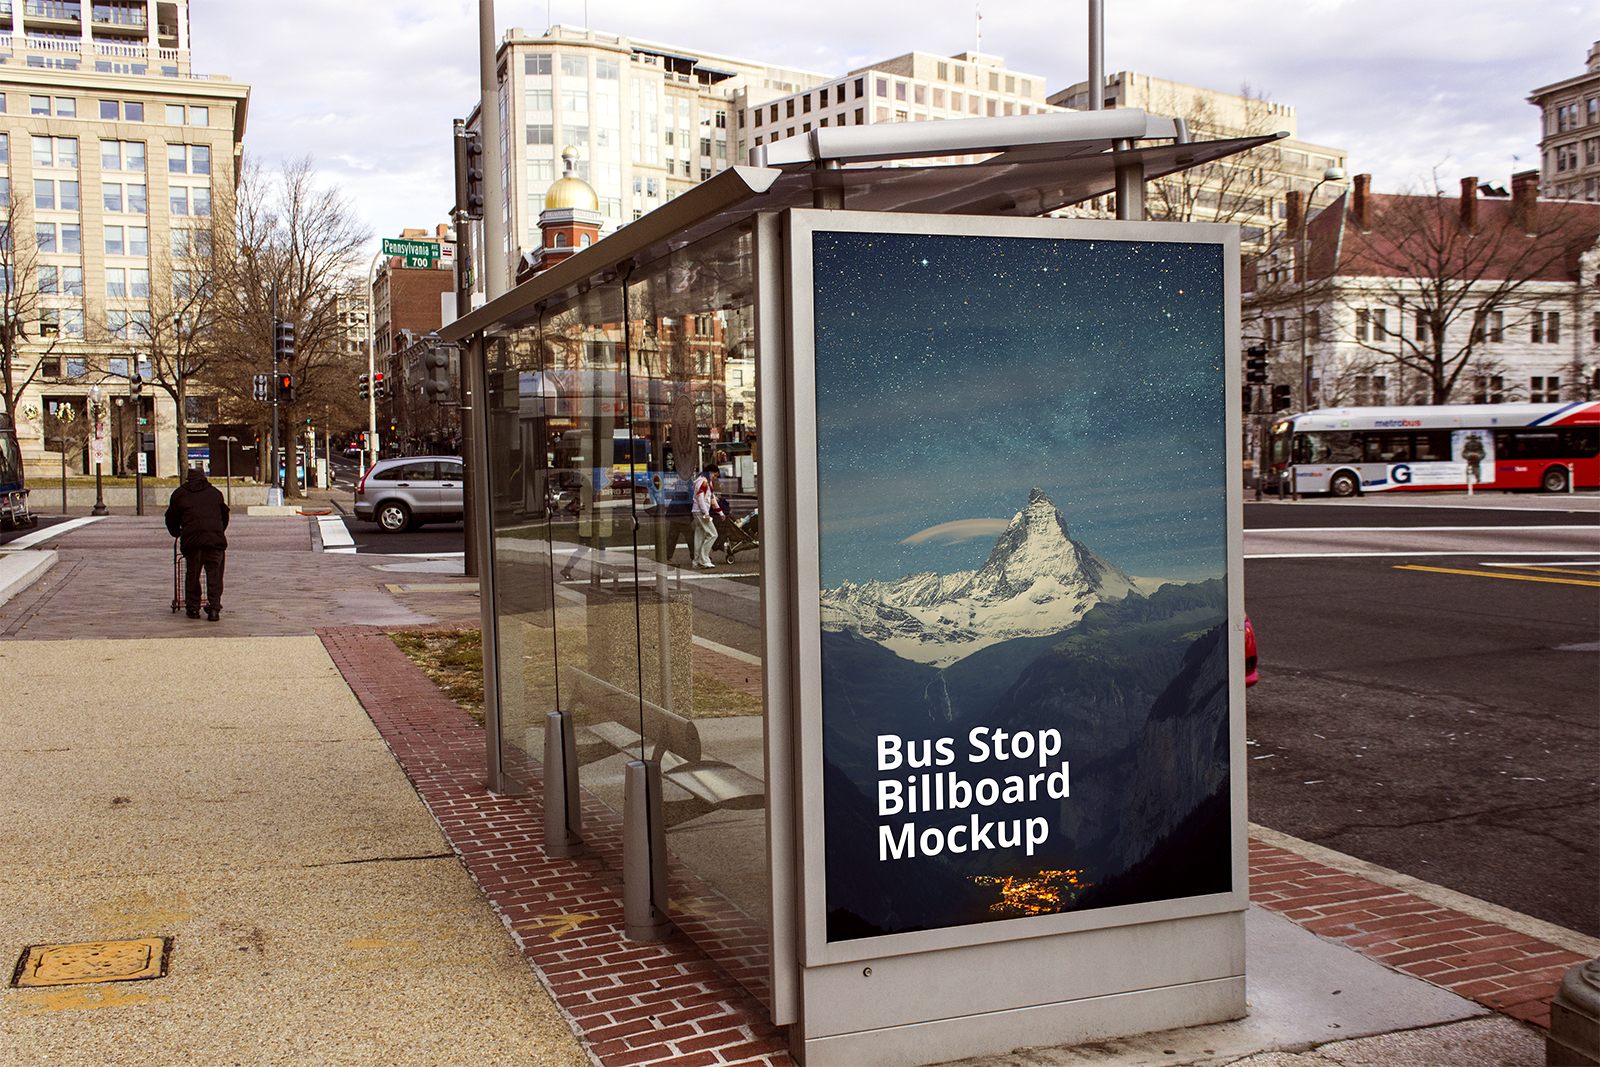 Outdoor Advertising Bus Stop Billboard Mockup